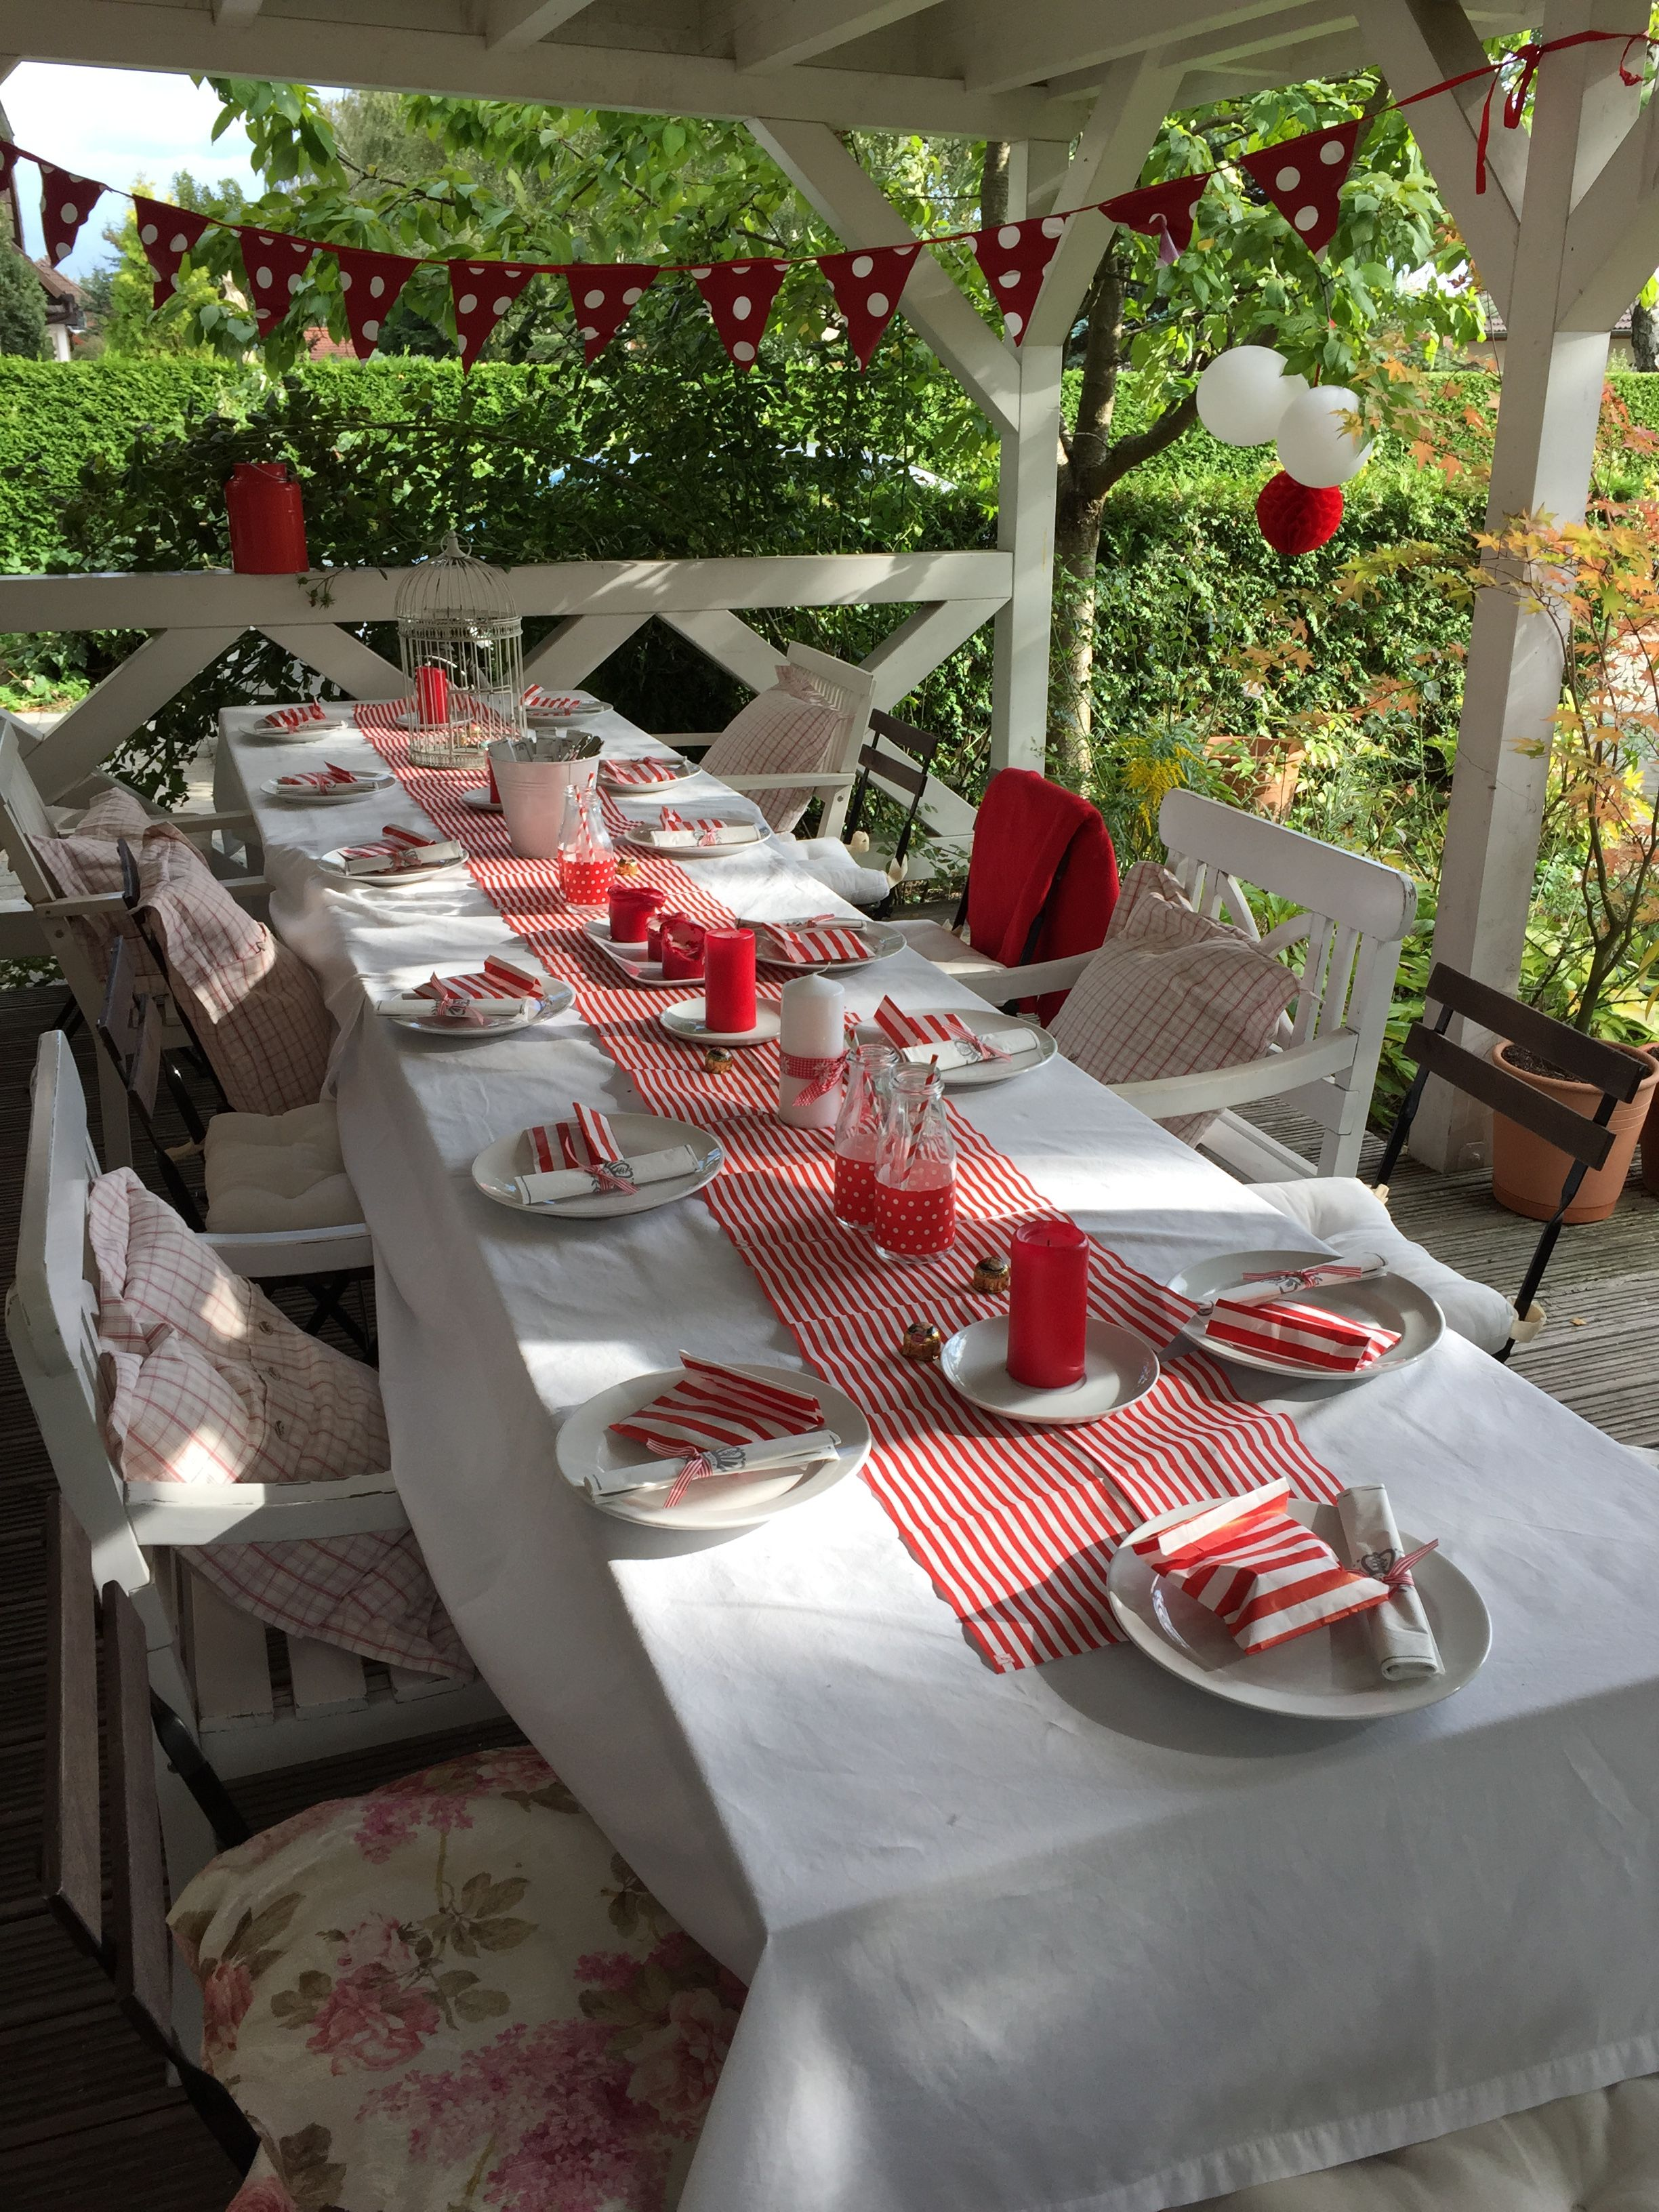 Landhausstil Deko Schweiz Rot Weiß Deko Things Table Decorations Switzerland Und Decor